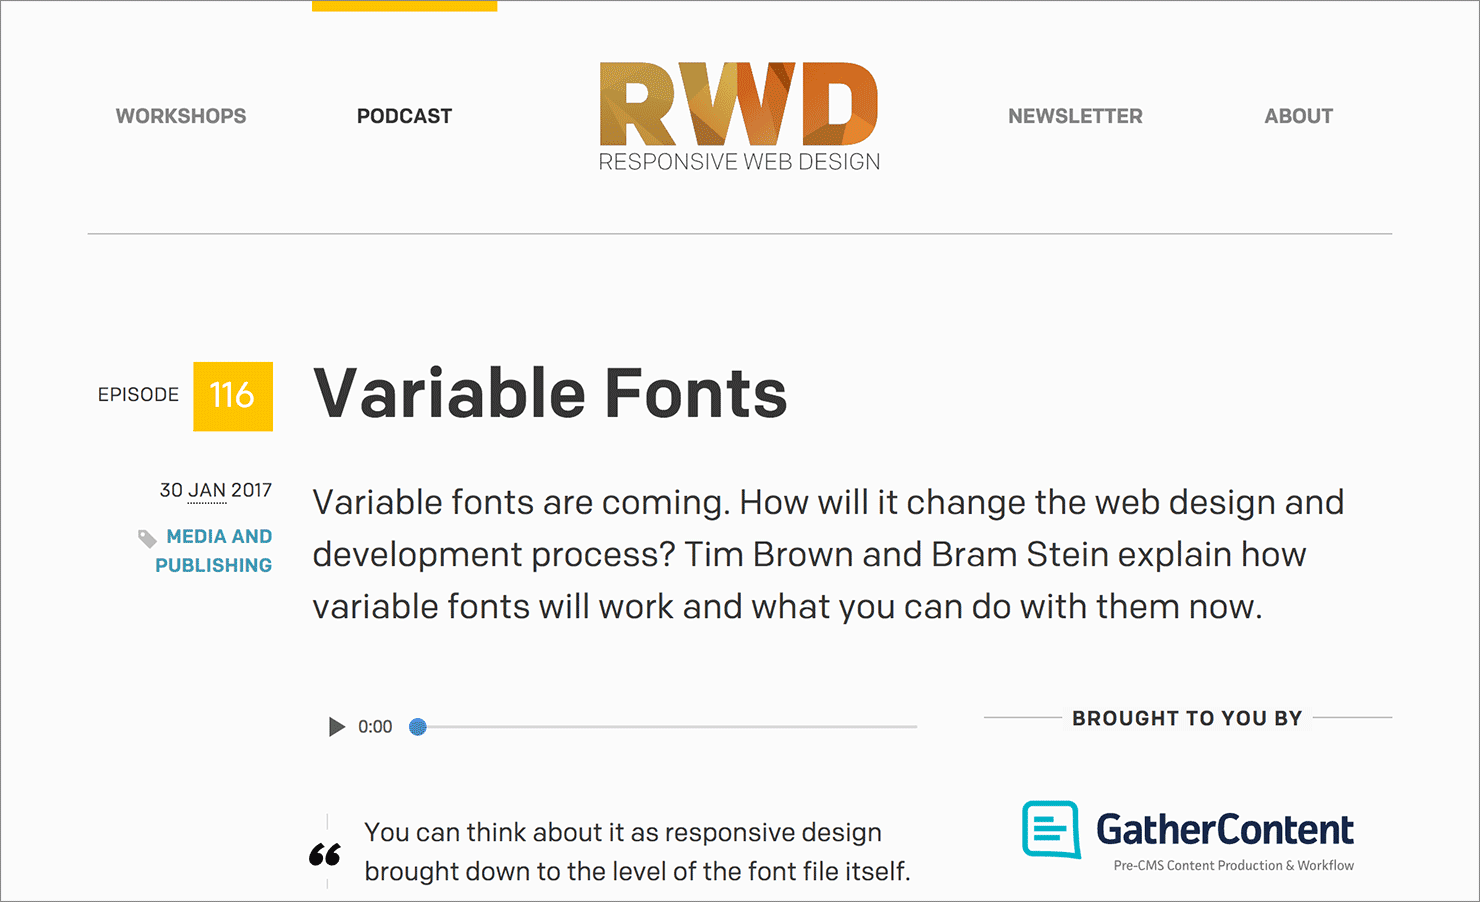 Variable Fonts on the Responsive Web Design podcast